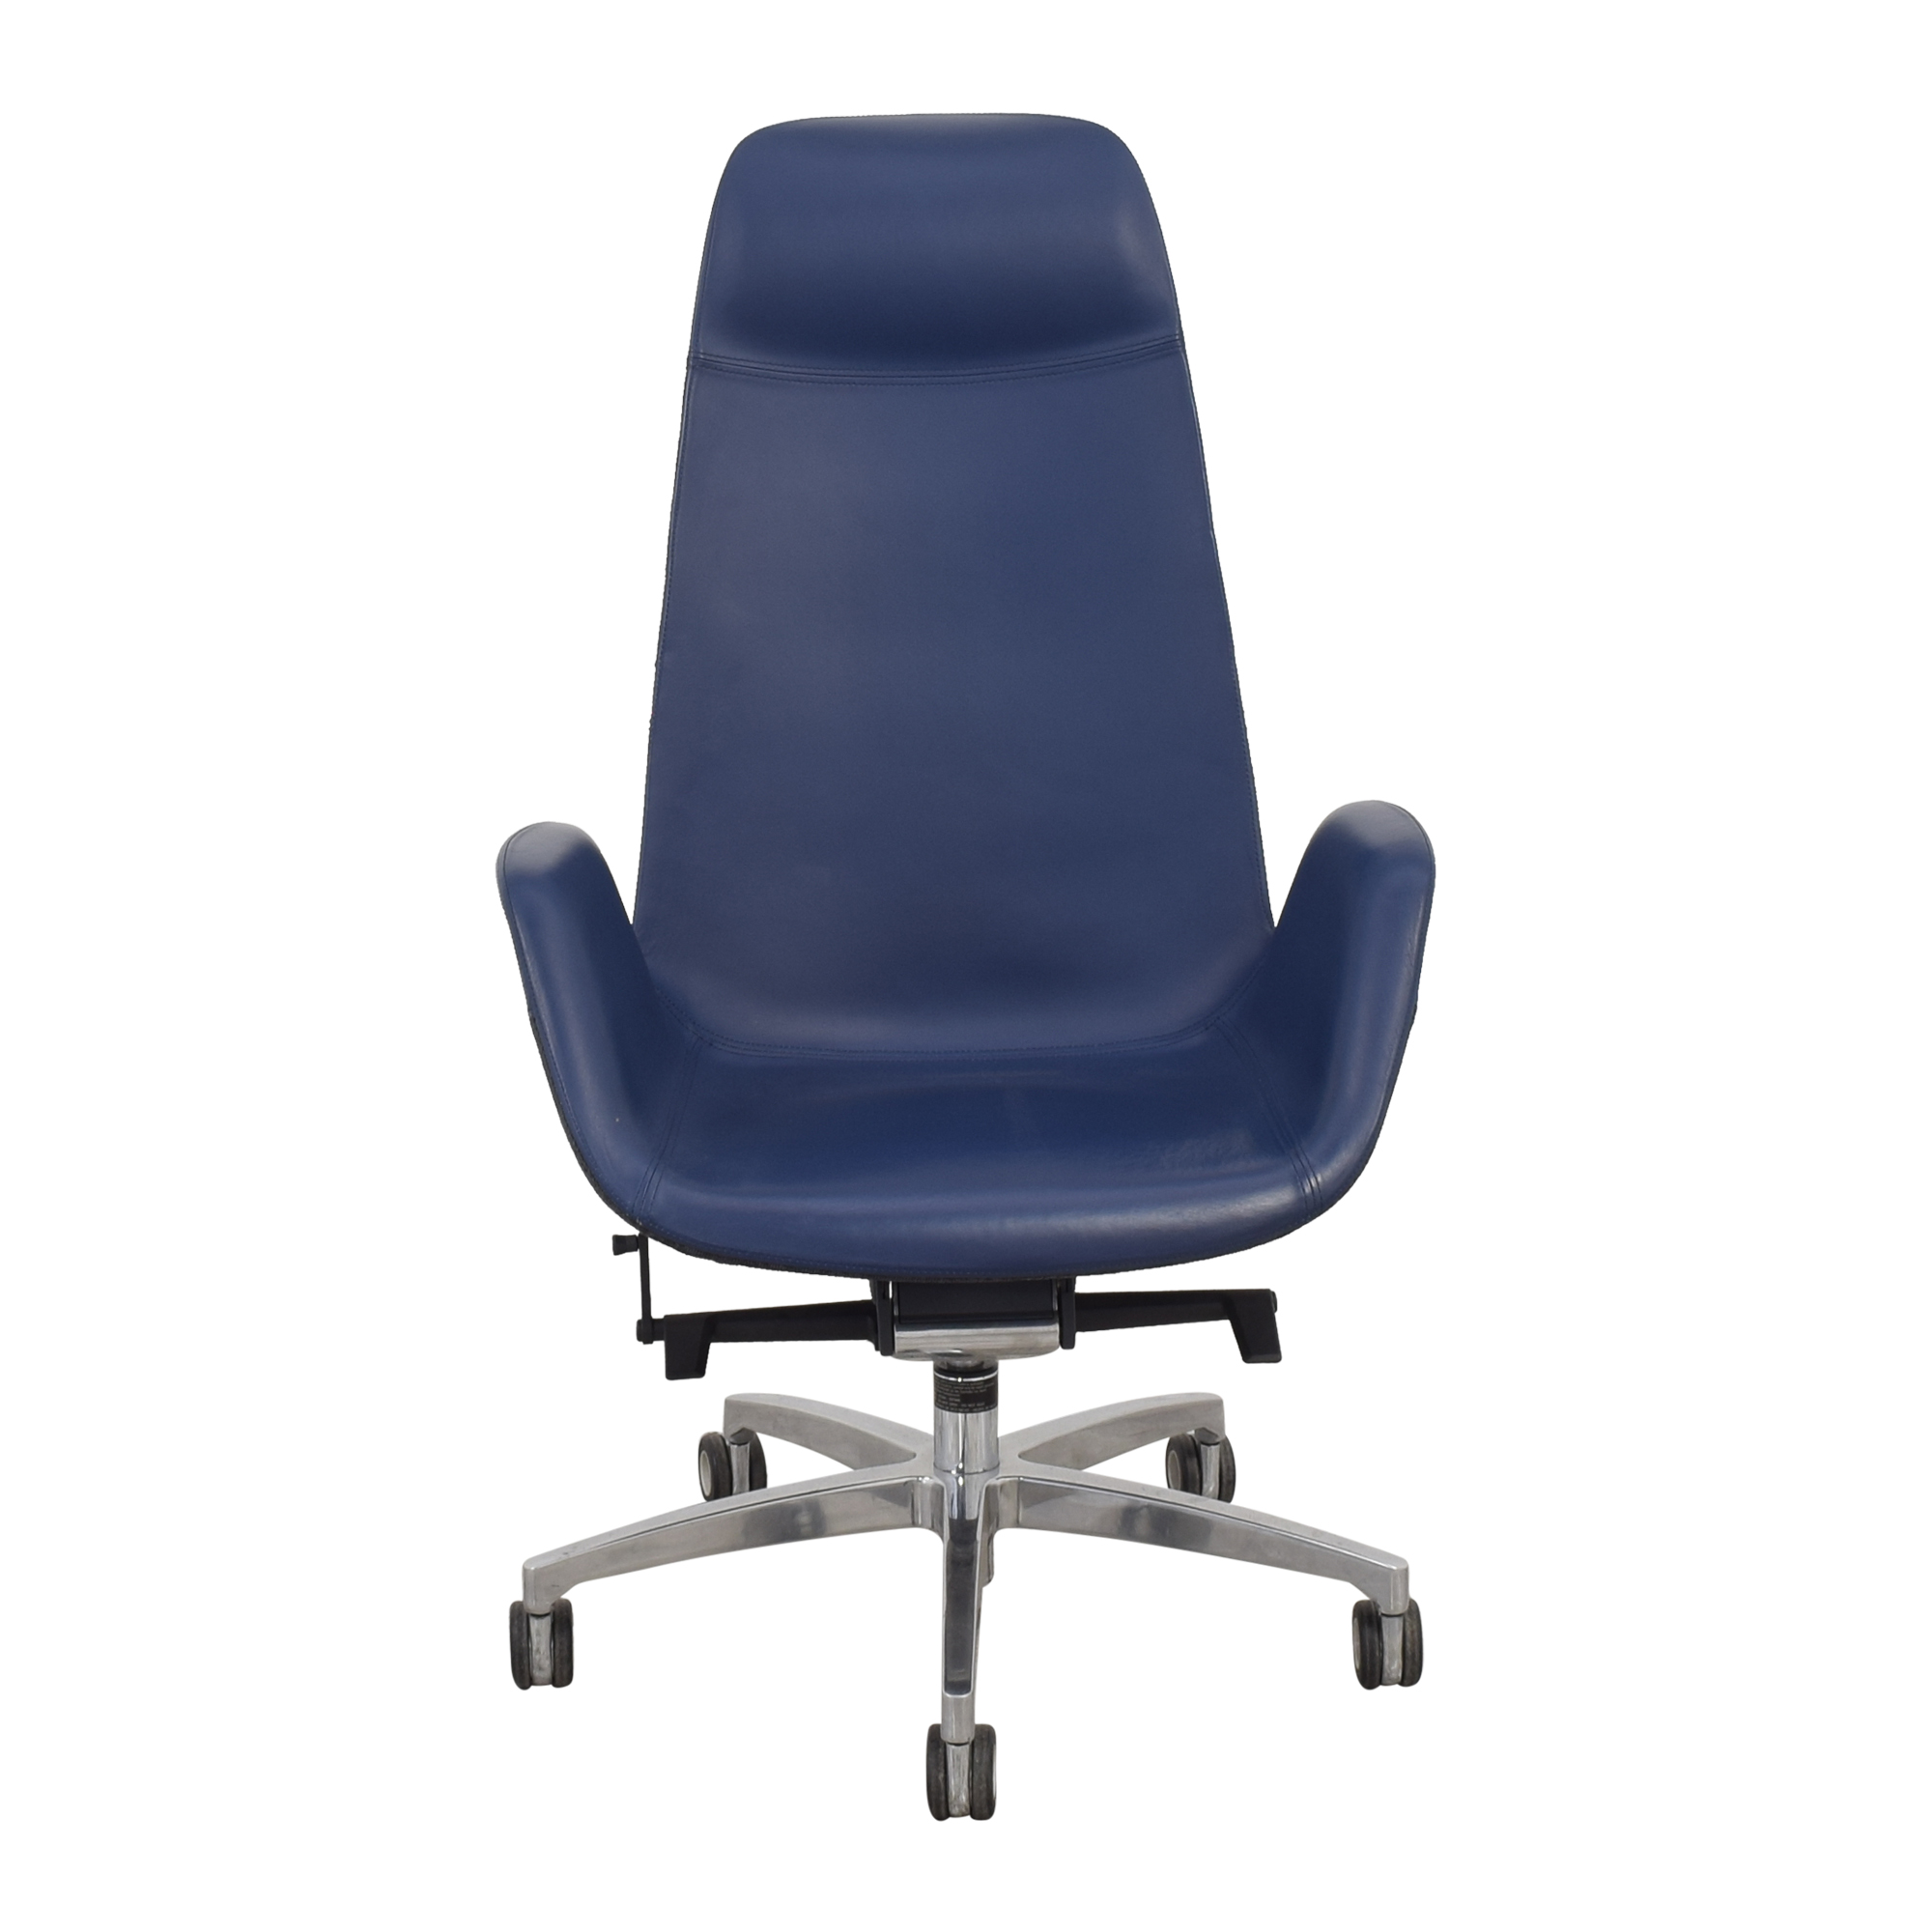 74 Off Koleksiyon Koleksiyon Halia High Back Office Chair Chairs